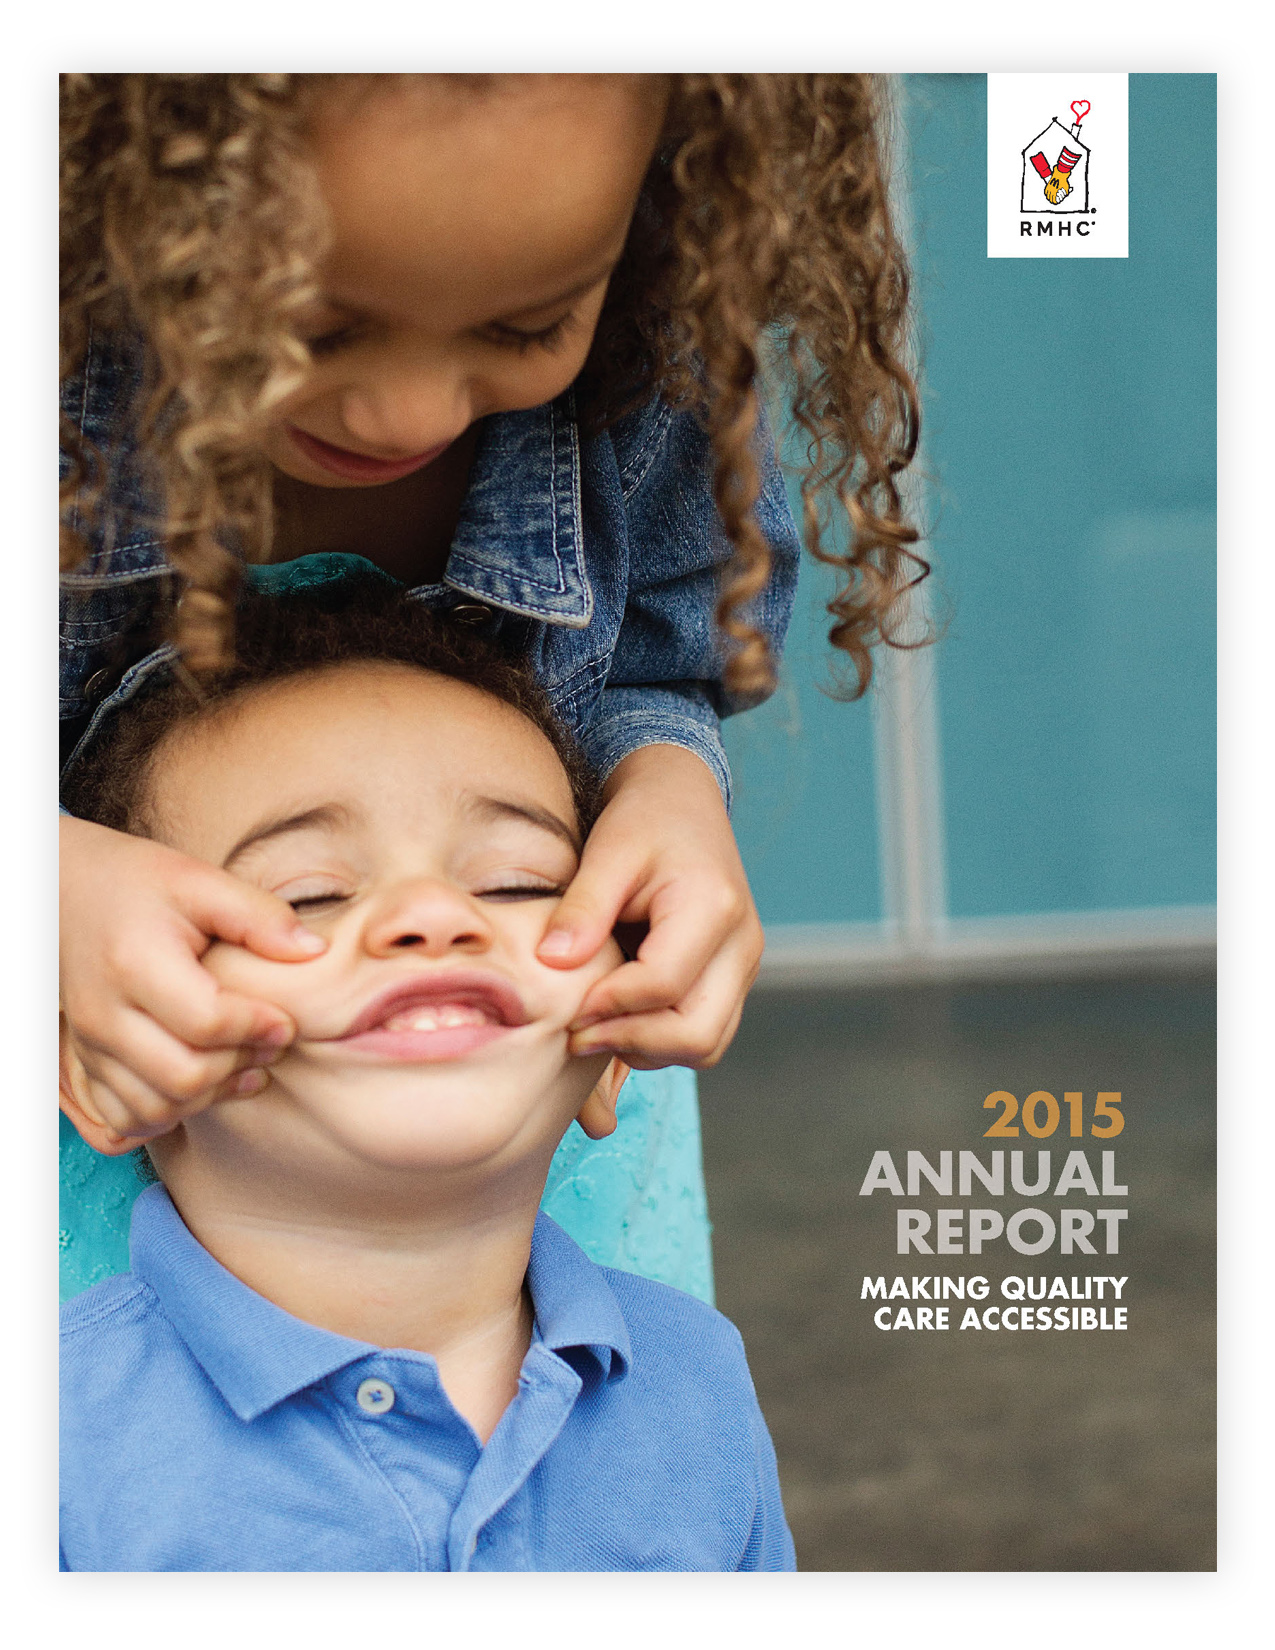 RMHC_Annual_Pages-1.jpg